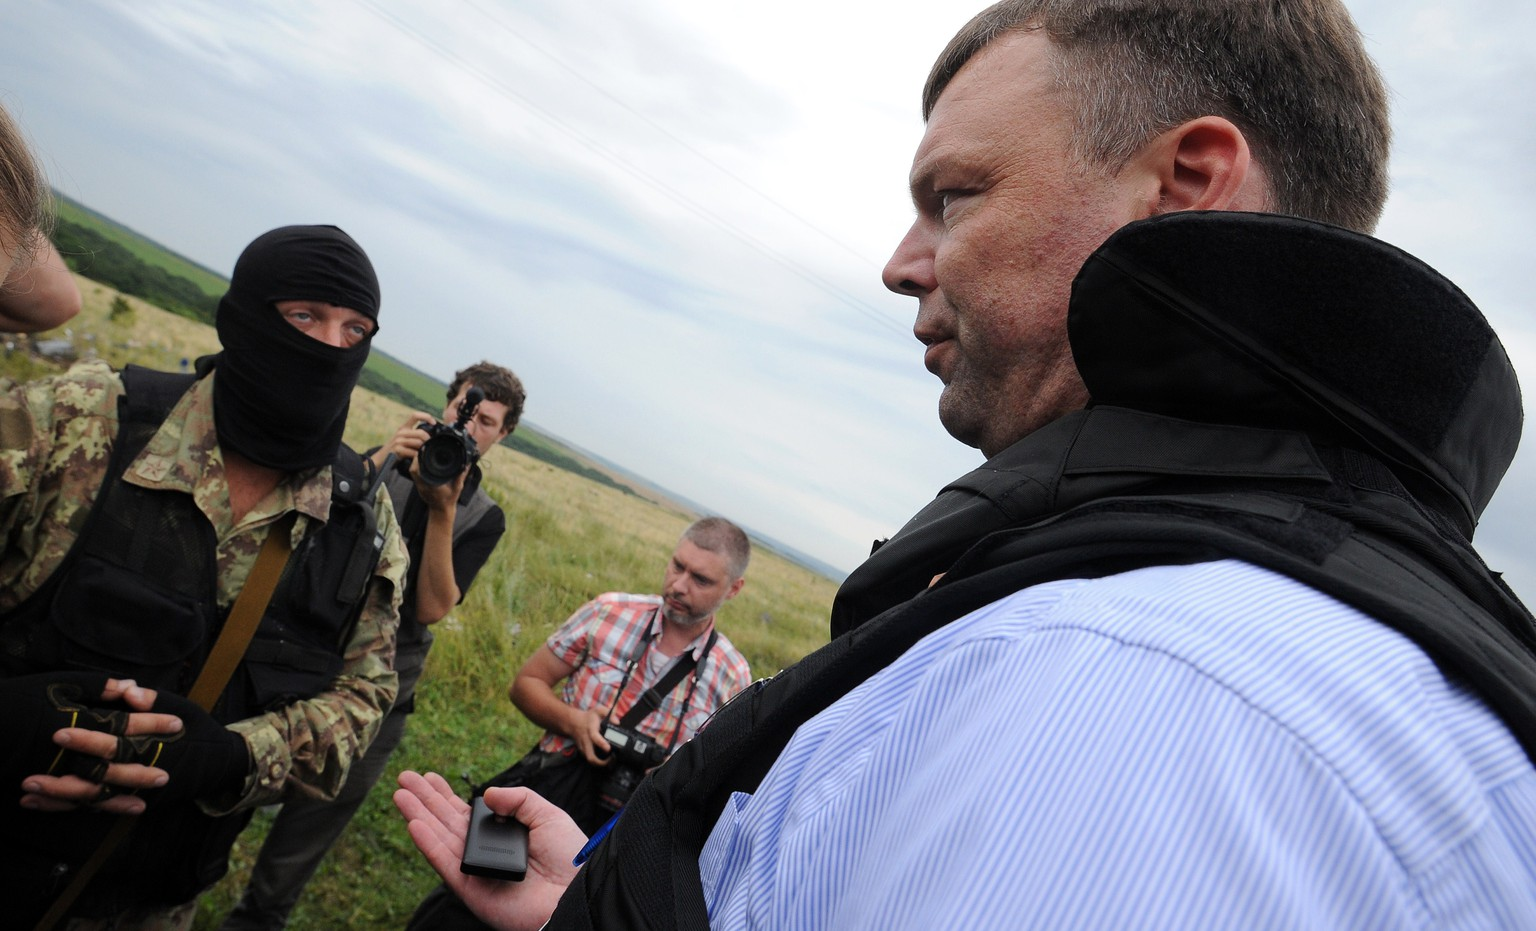 Alexander Hug, (R) Deputy Chief Monitor of the Organization for Cooperation and Security in Europe's (OSCE) Special Monitoring Mission to Ukraine, talks with a Pro-Russian separatist at the site of the crash of a Malaysian airliner carrying 298 people from Amsterdam to Kuala Lumpur in Grabove, in rebel-held east Ukraine, on July 18, 2014. Members of the UN Security Council demanded a full, independent investigation into the apparent shooting down of a Malaysia Airlines jet over Ukraine. AFP PHOTO / DOMINIQUE FAGET